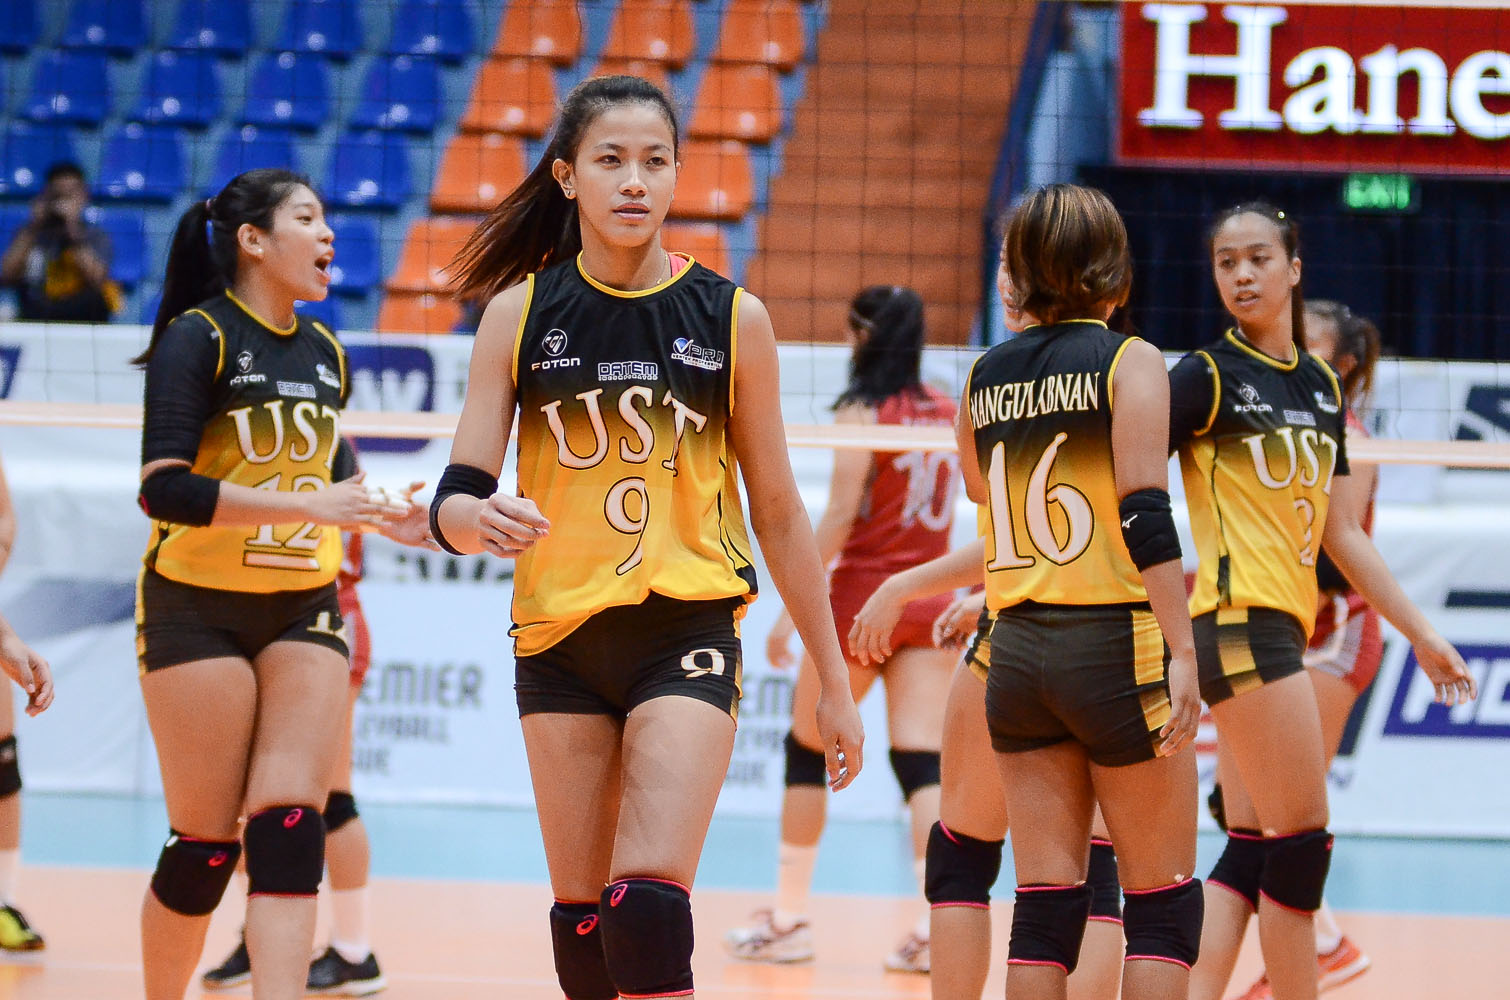 Tiebreaker Times EJ Laure out to make up for lost time News PVL UST Volleyball  UST Women's Volleyball Kungfu Reyes EJ Laure 2019 PVL Season 2019 PVL Collegiate Conference